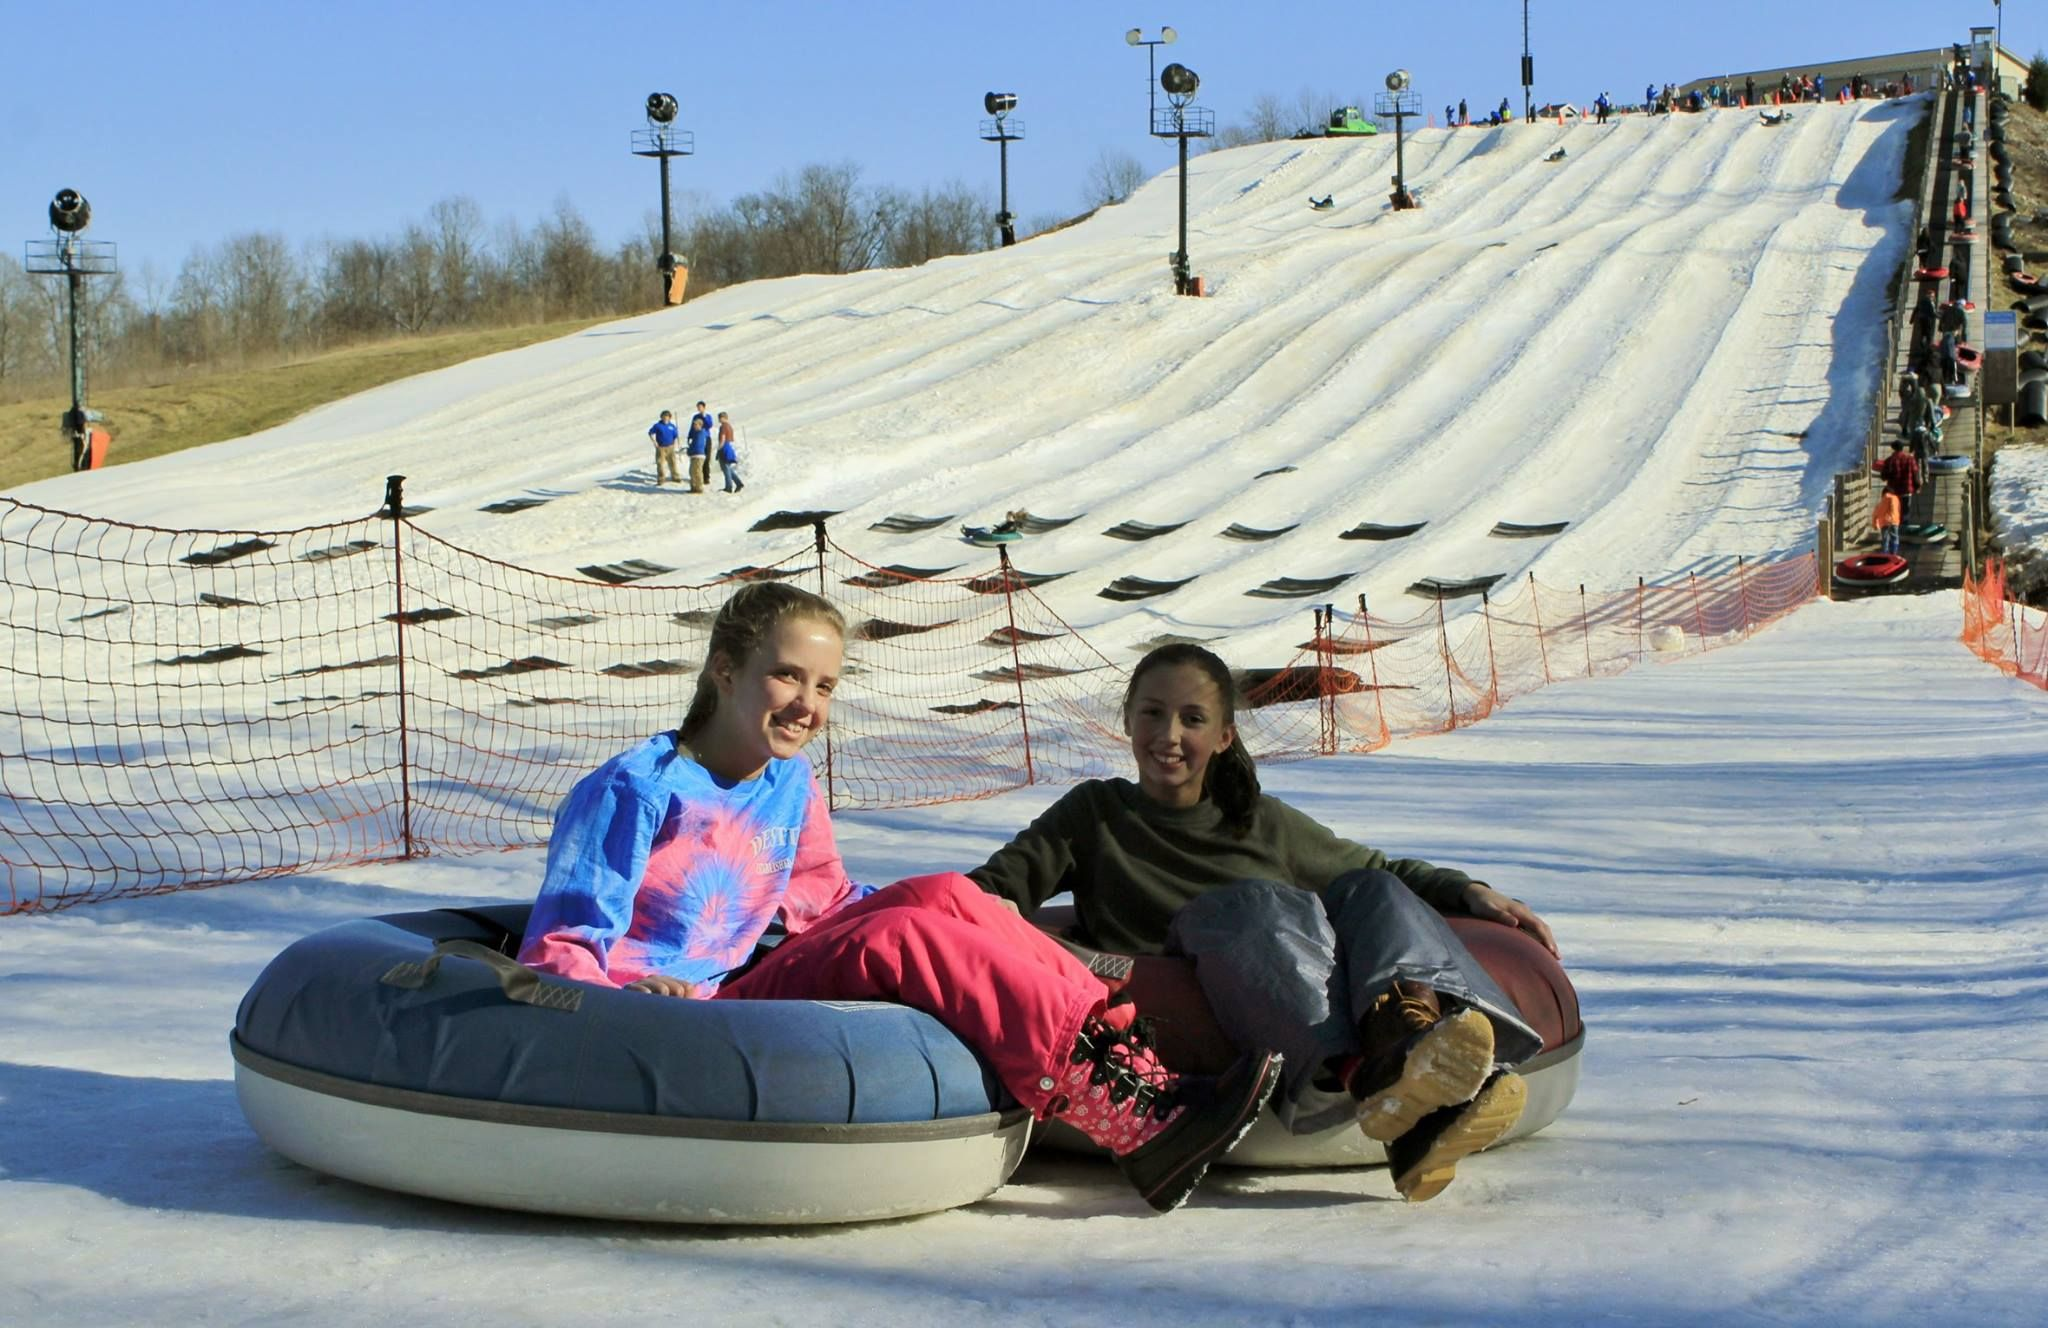 The Country S Most Underrated Snow Tubing Park In Indiana Is Paoli Peaks And It S A Blast To Visit Paoli Peaks Snow Tubing Indiana